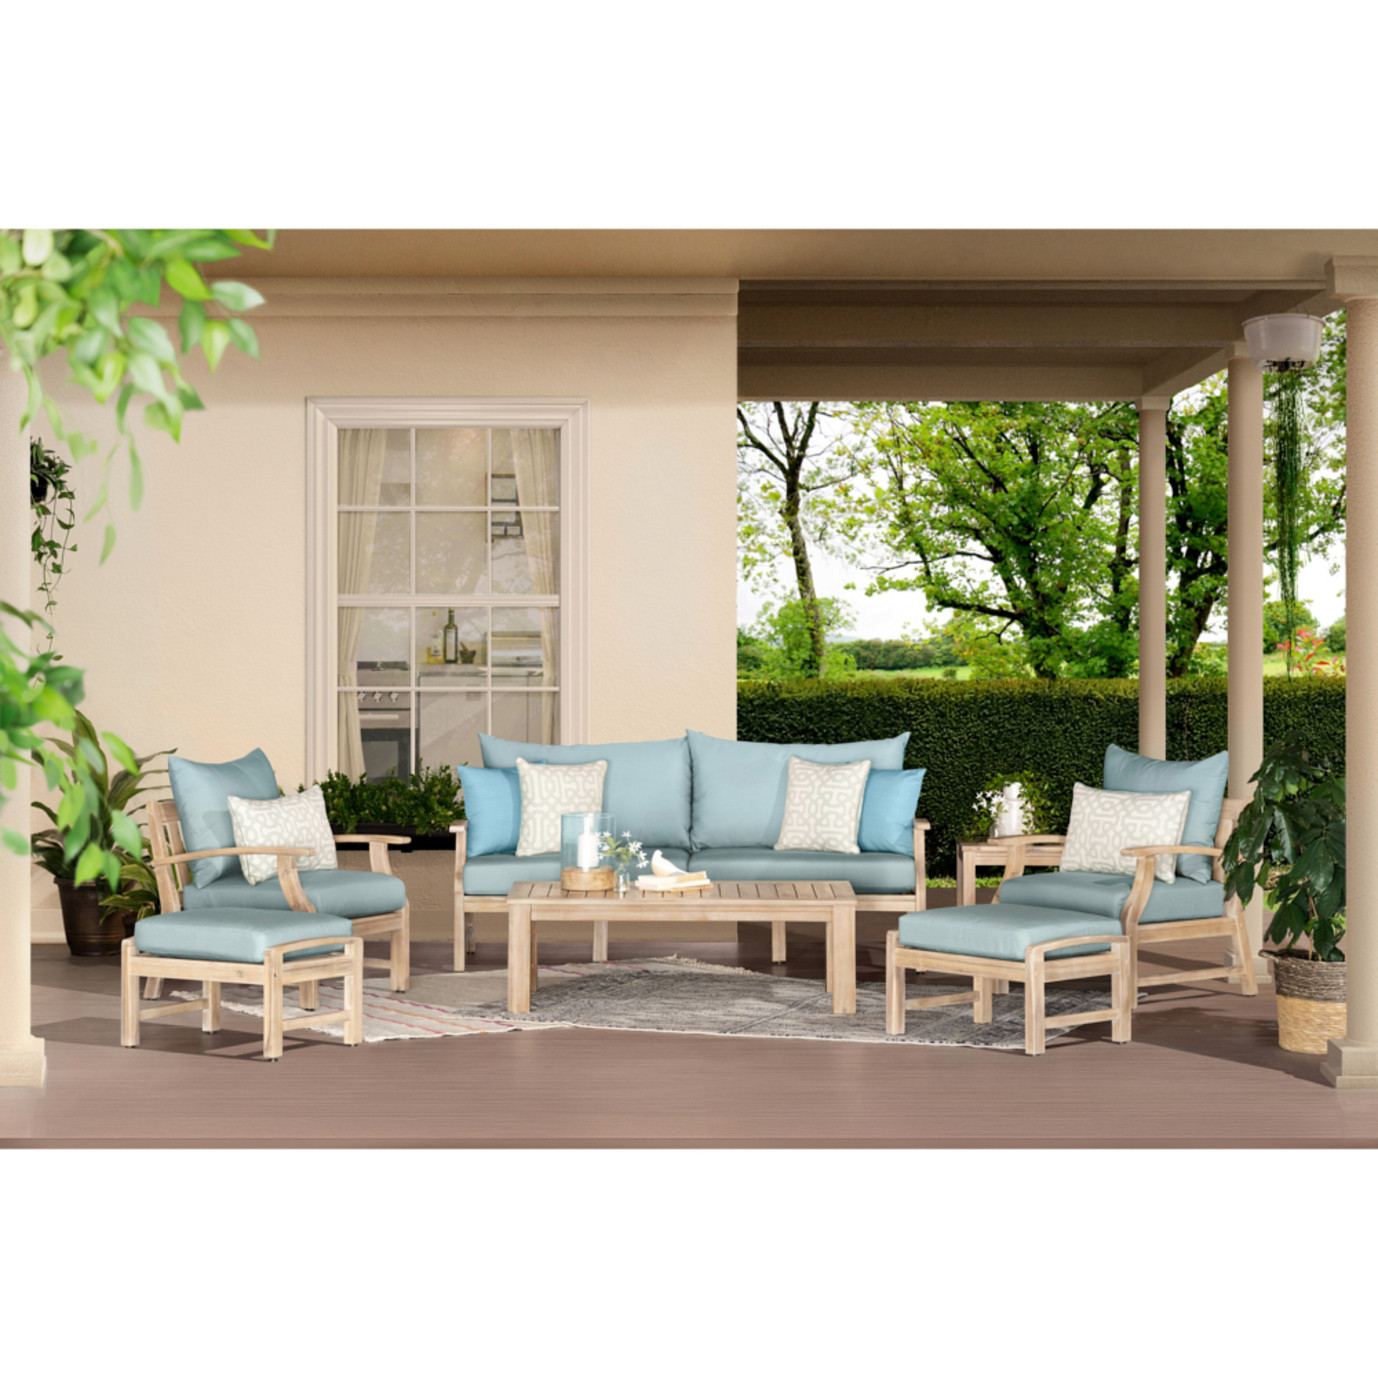 Kooper™ 7 Piece Outdoor Sofa & Club Chair Set - Spa Blue